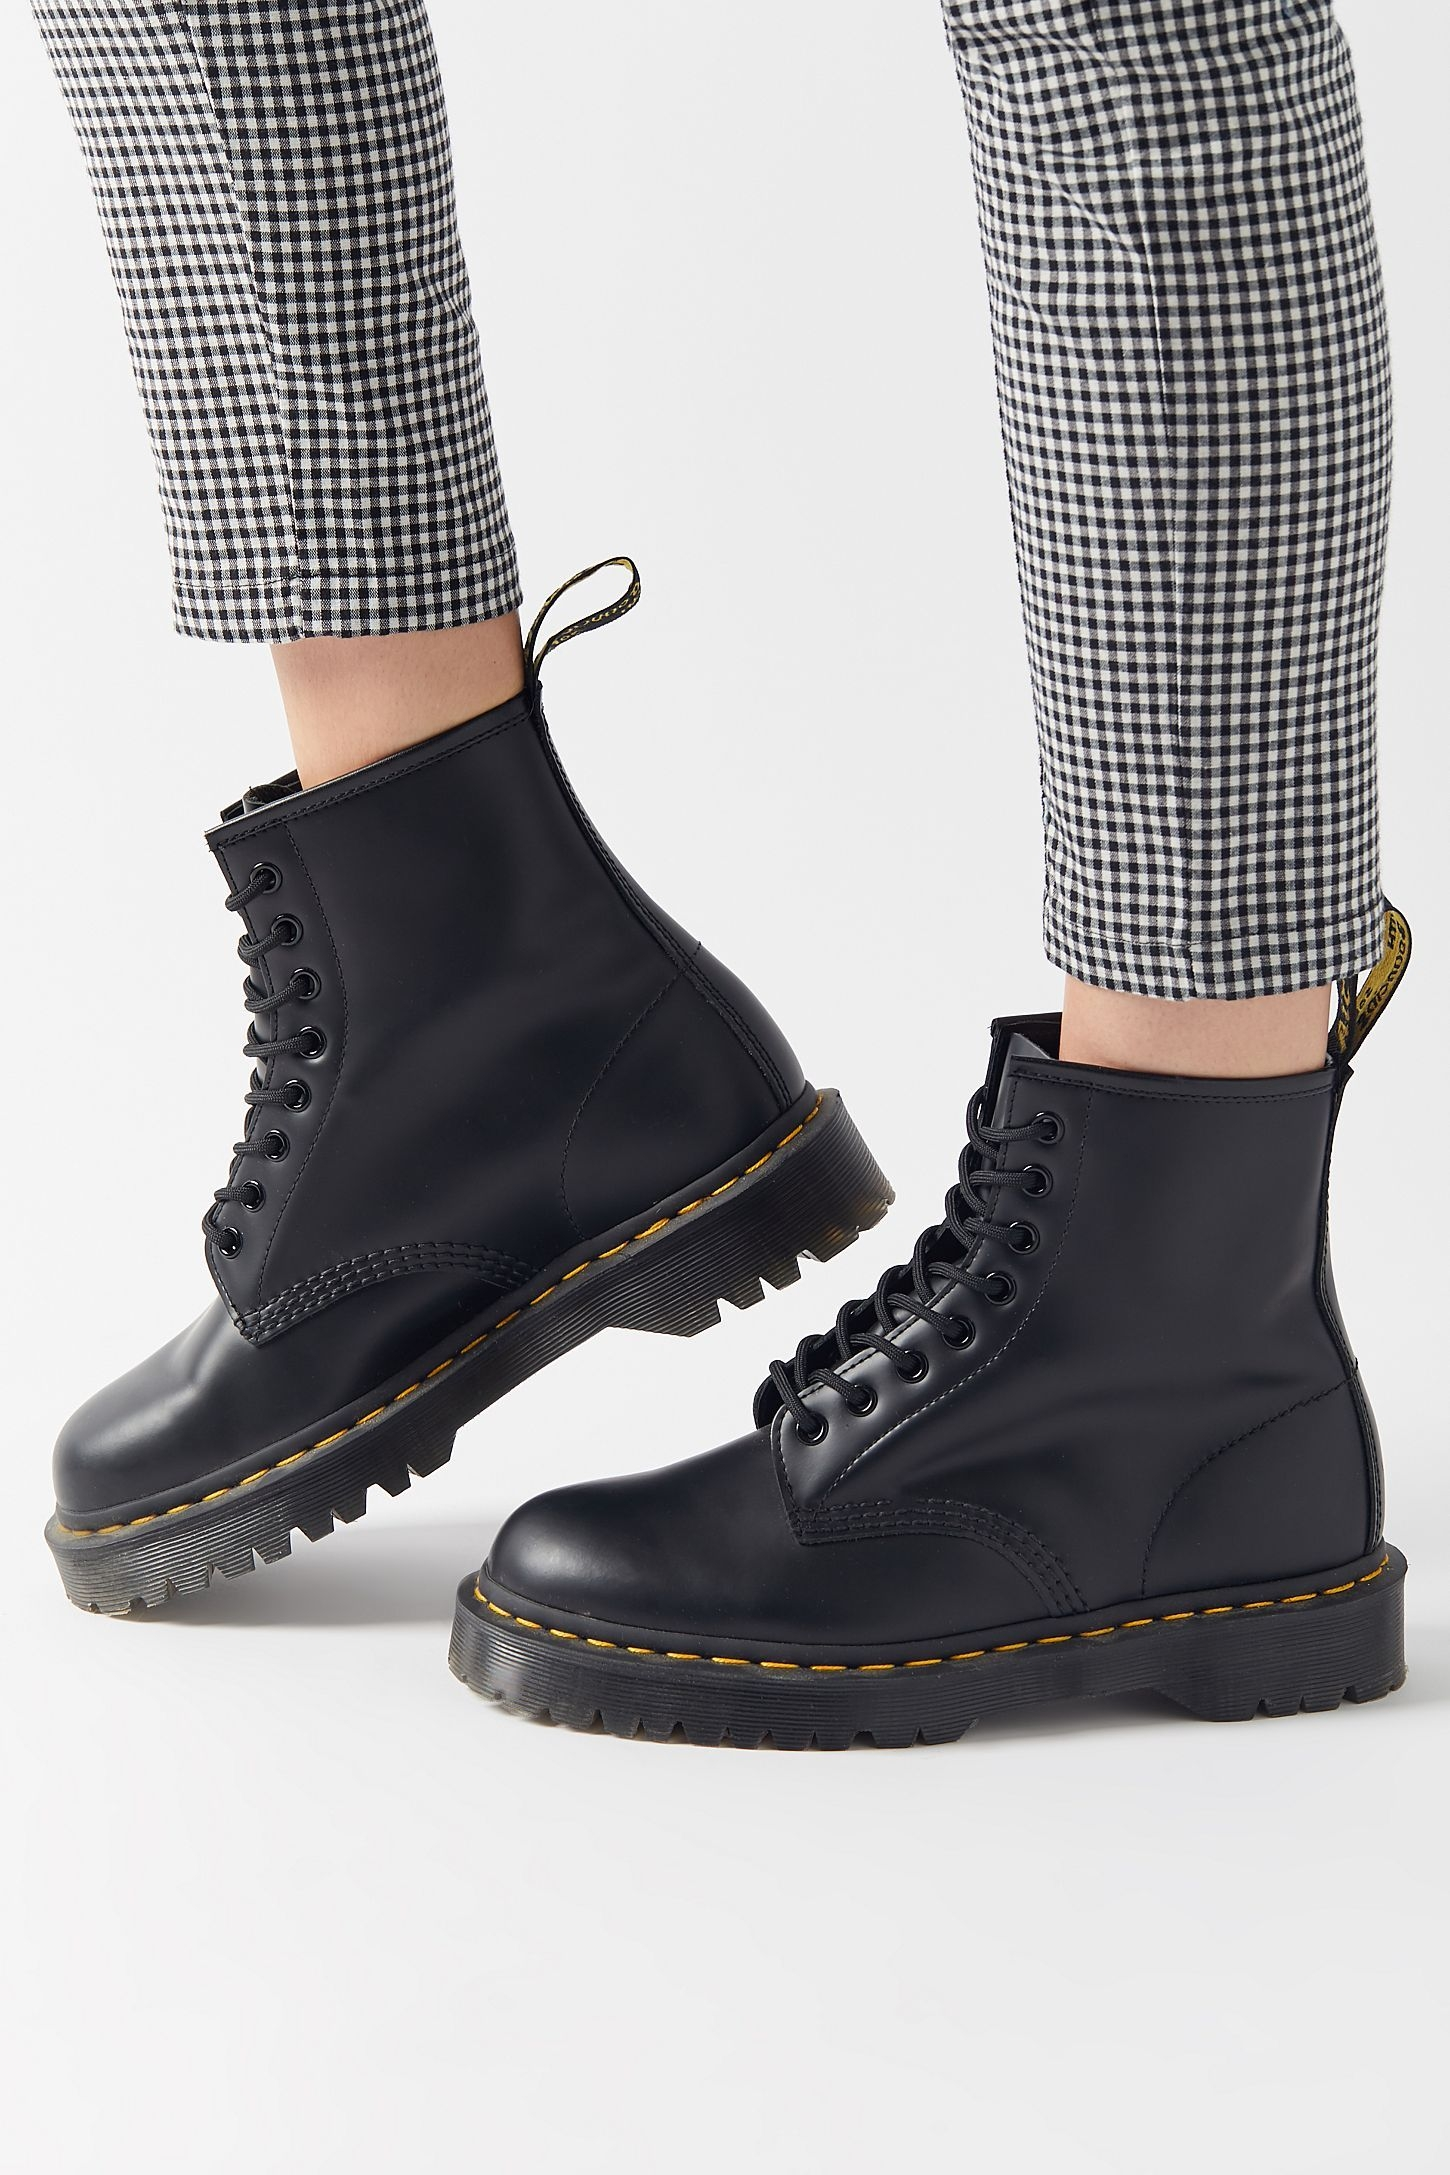 How to wear Doc Martens in the most fashionable way to suit 2021 trend?